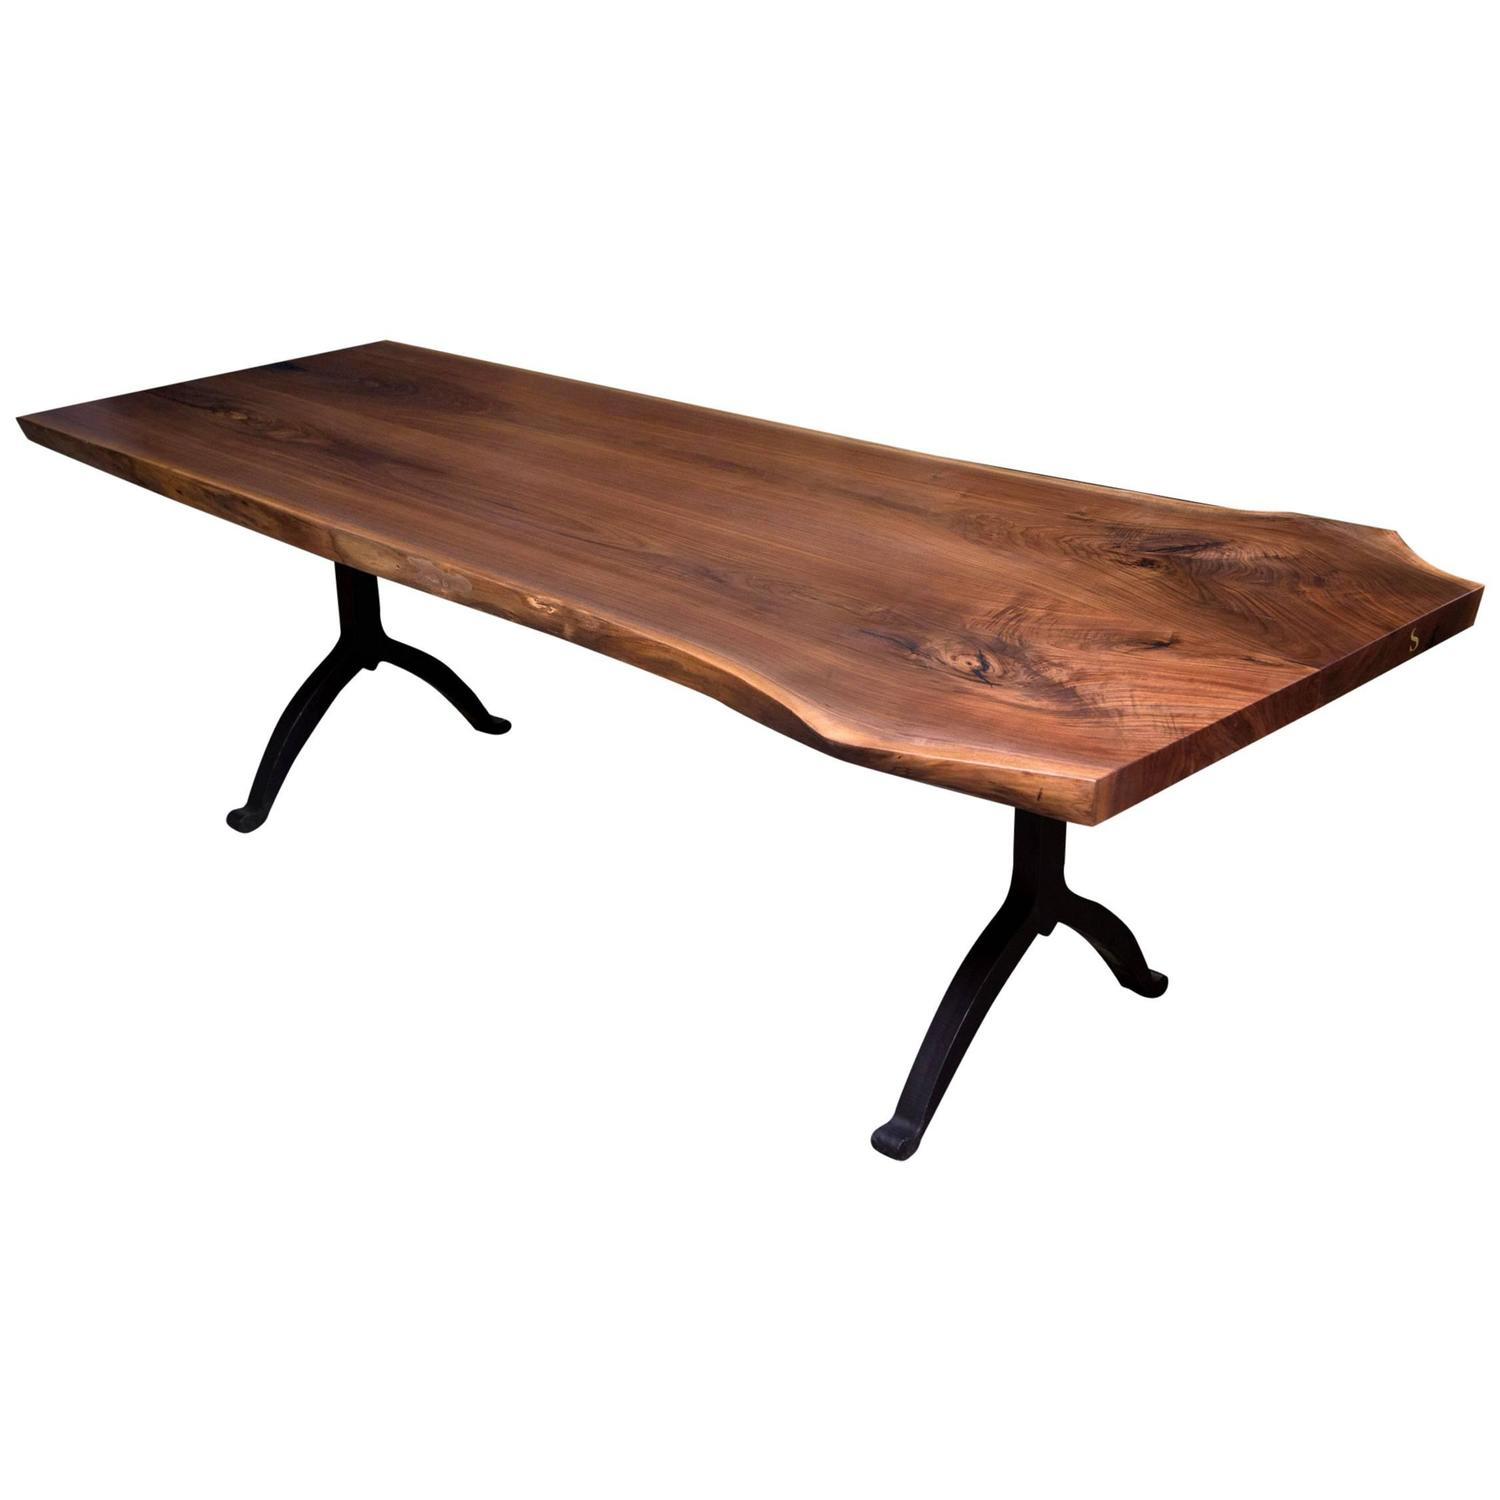 Signature Live Edge Black Walnut Slab Table Blackened Steel